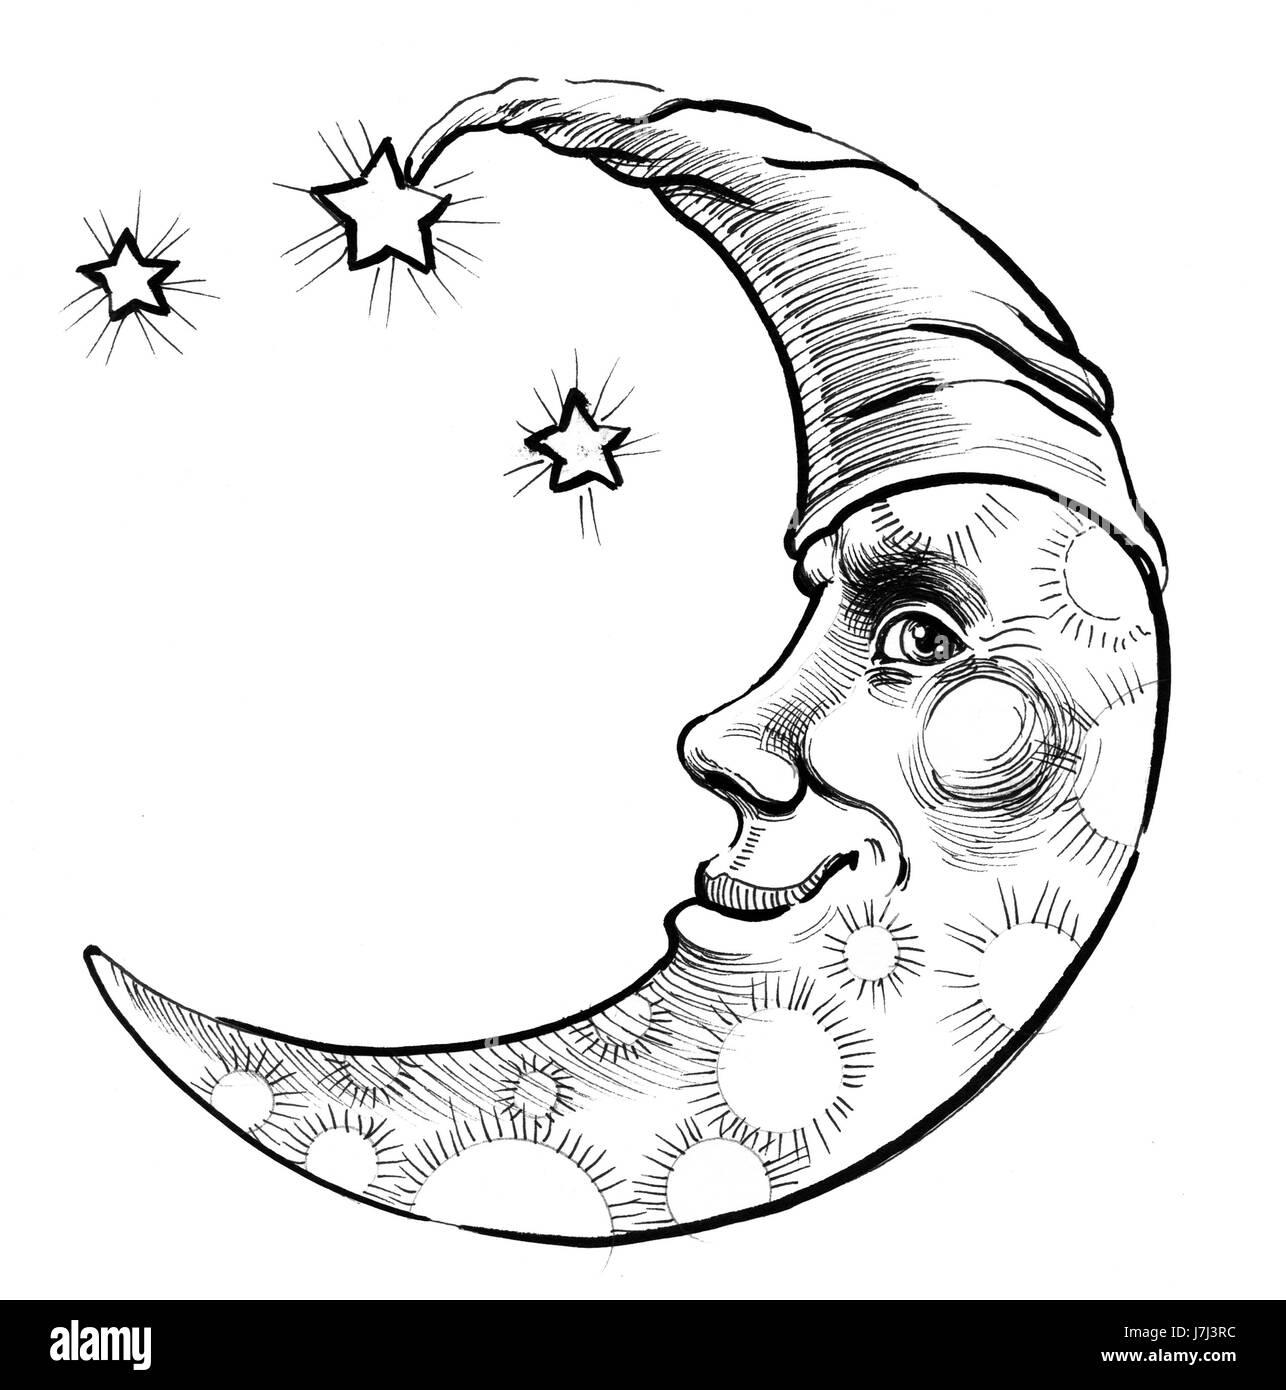 Half Crescent Moon With Face Tattoo: Moon Face And Stars Stock Photo: 142383680